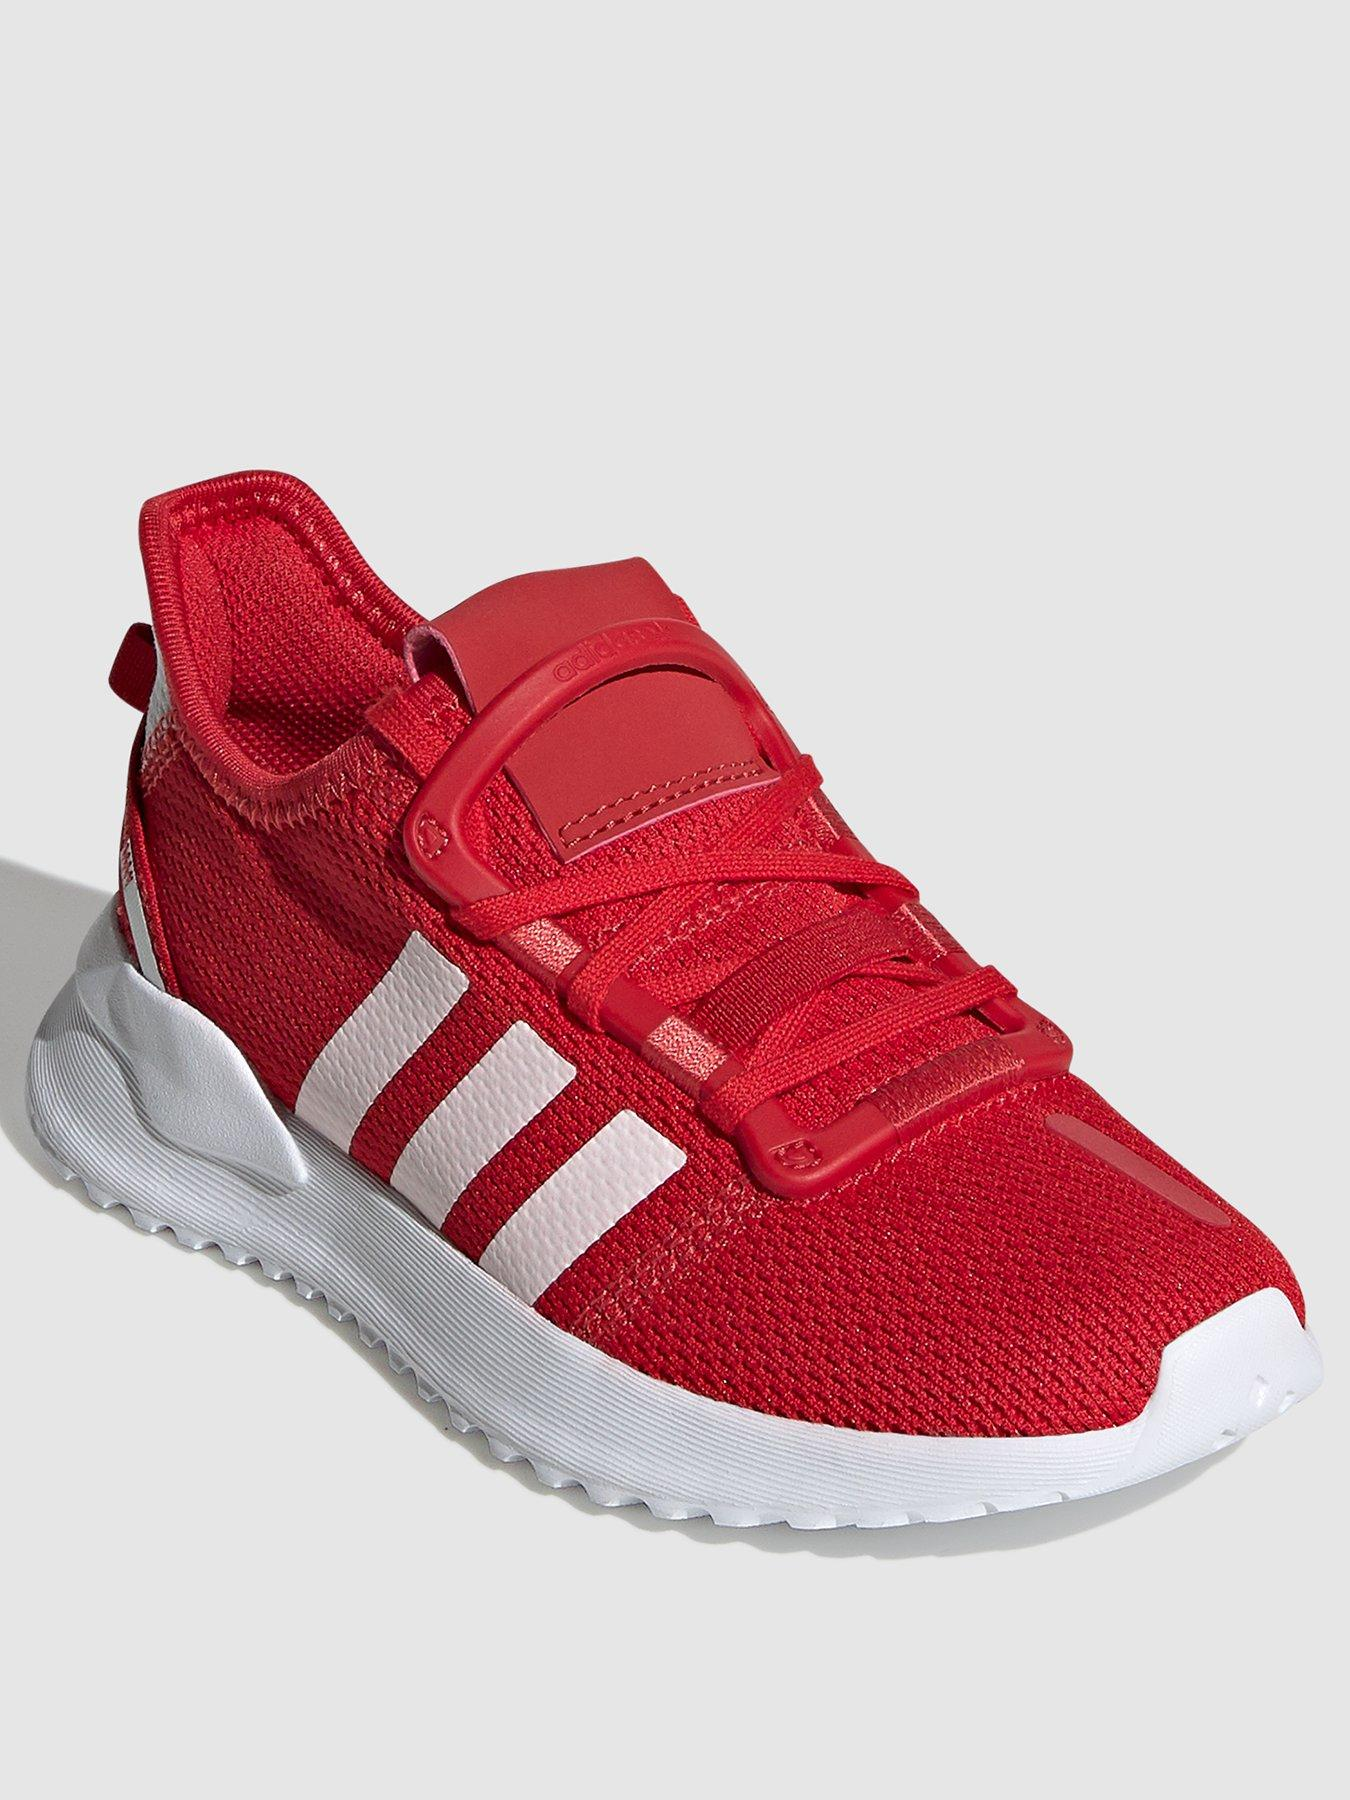 Red | Adidas | Kids \u0026 baby sports shoes